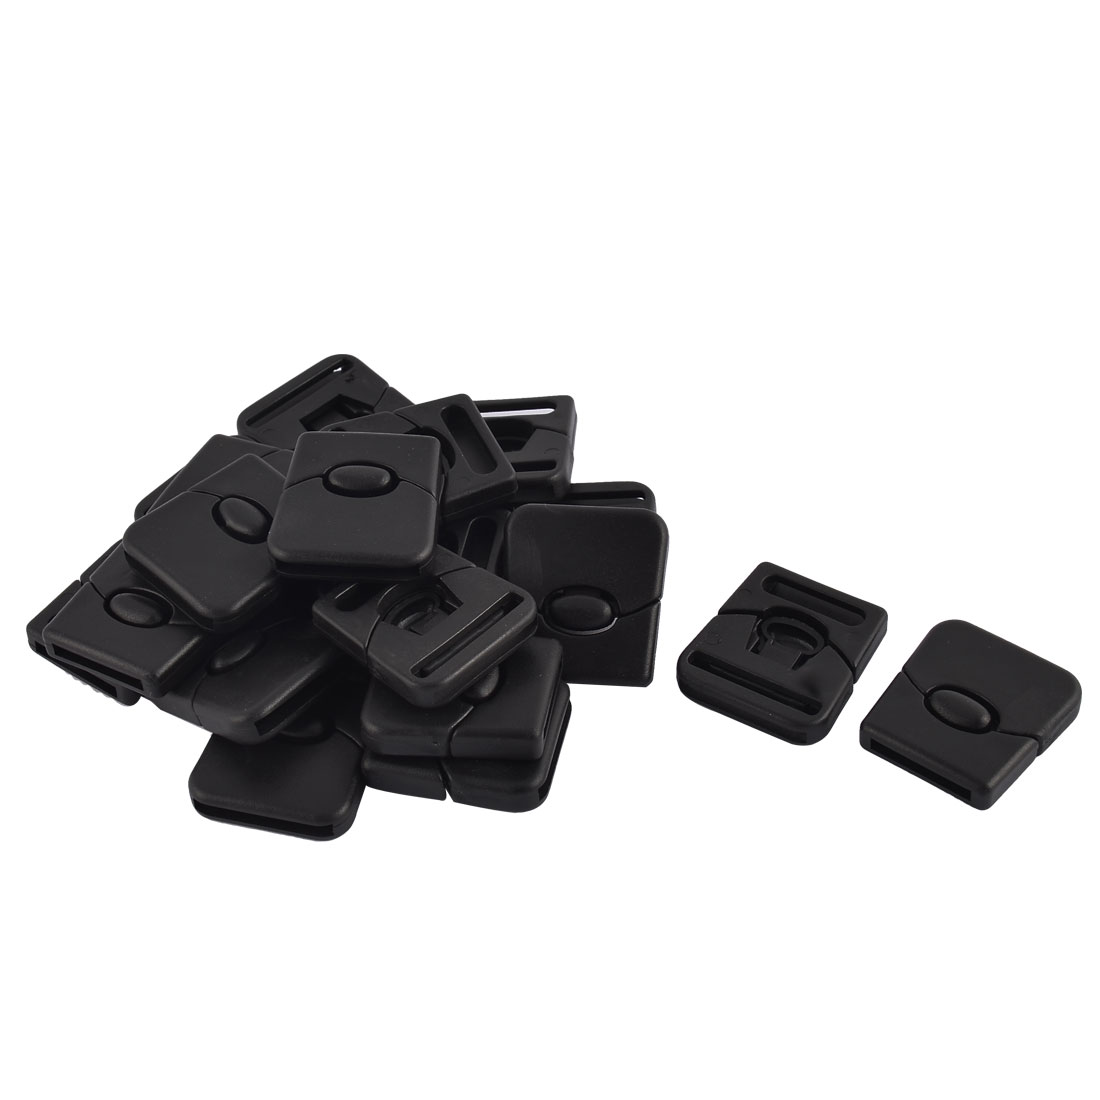 Backpack Strap Middle Button Plastic Side Quick Release Buckles Black 26mm 20pcs